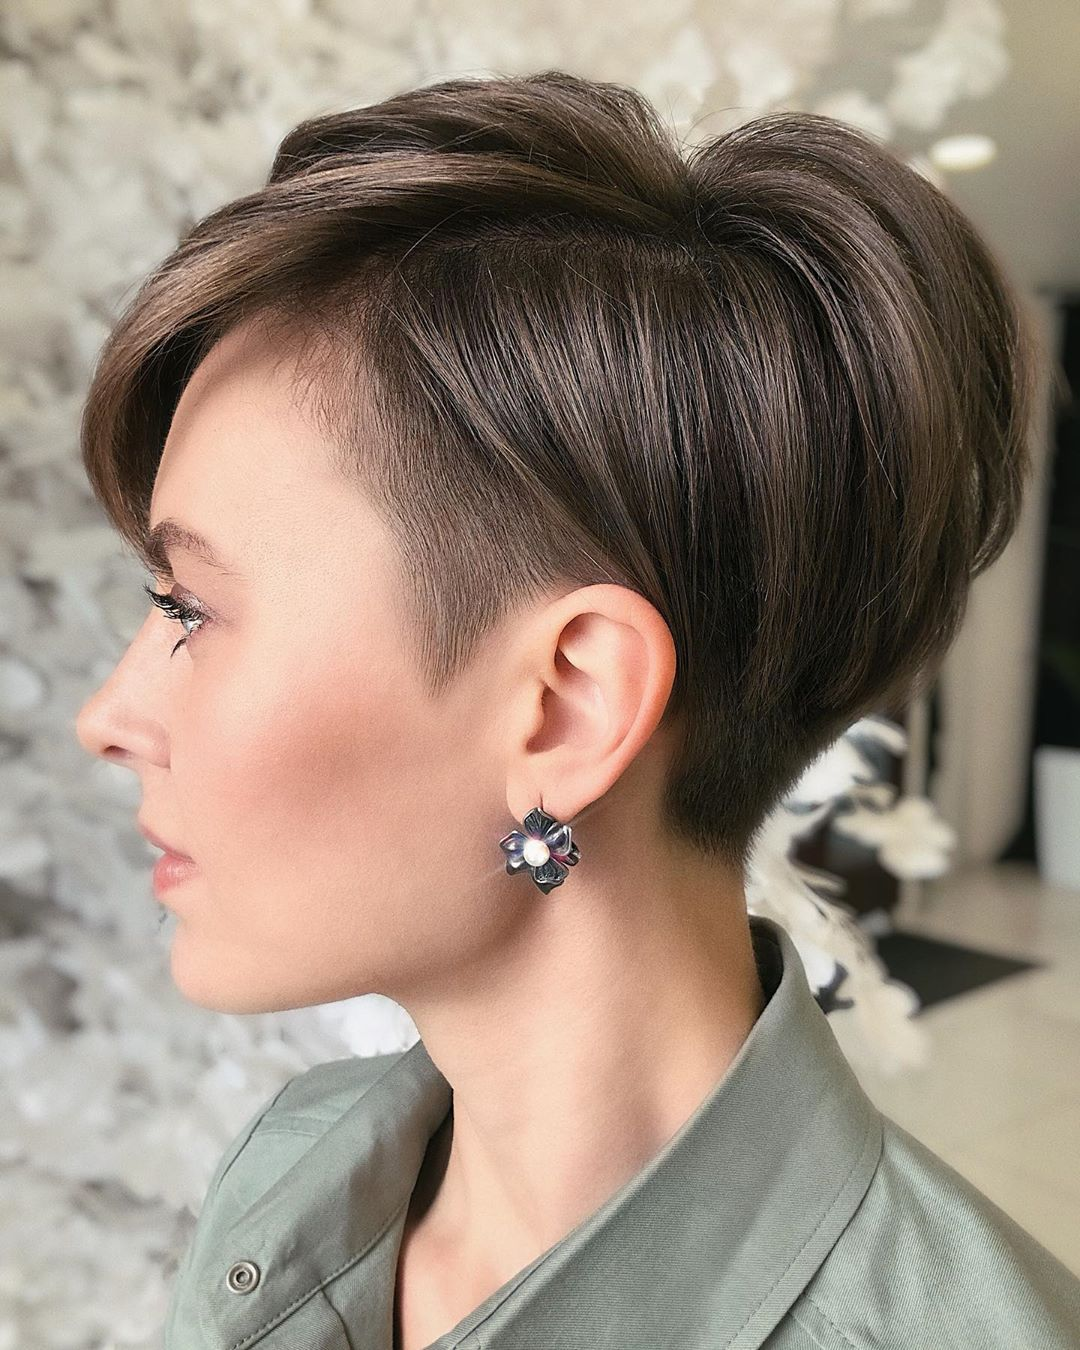 Undercut Short Pixie Cut for Fine Hair